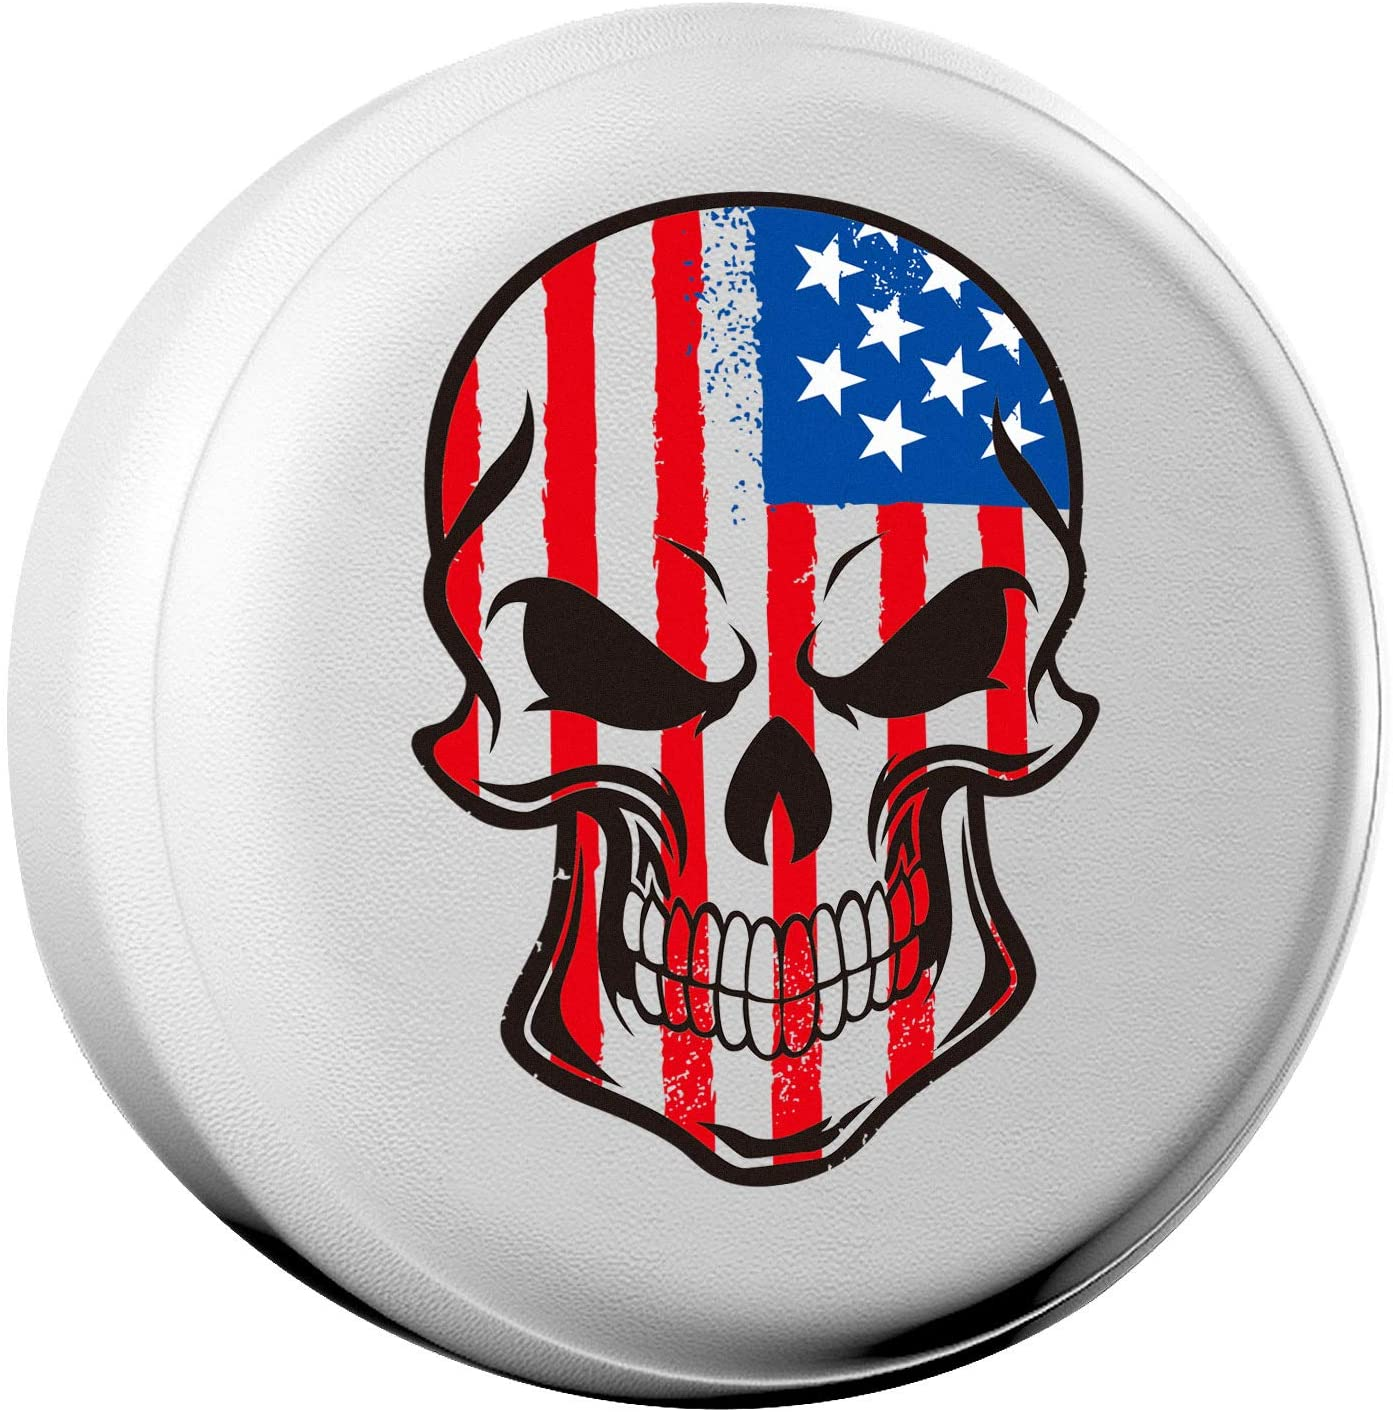 AmFor Spare Tire Cover, Universal Fit for Jeep, Trailer, RV, SUV, Truck and Many Vehicle, Wheel Diameter 32